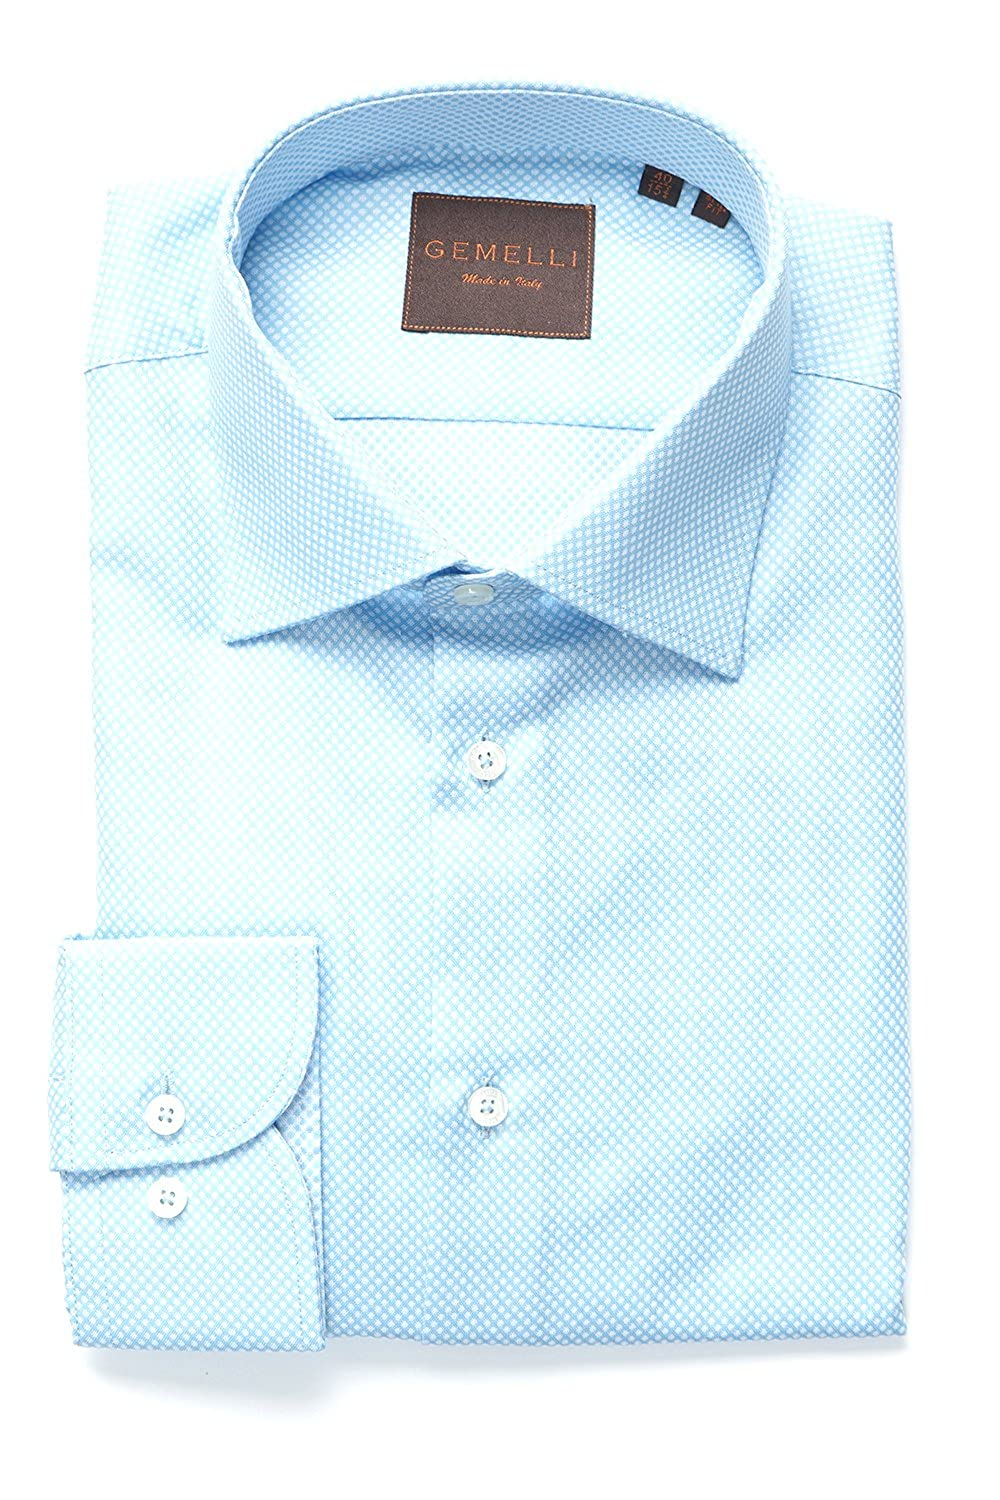 Gemelli Mens Dress Shirt Slim Fit Made In Italy 100 Cotton Long